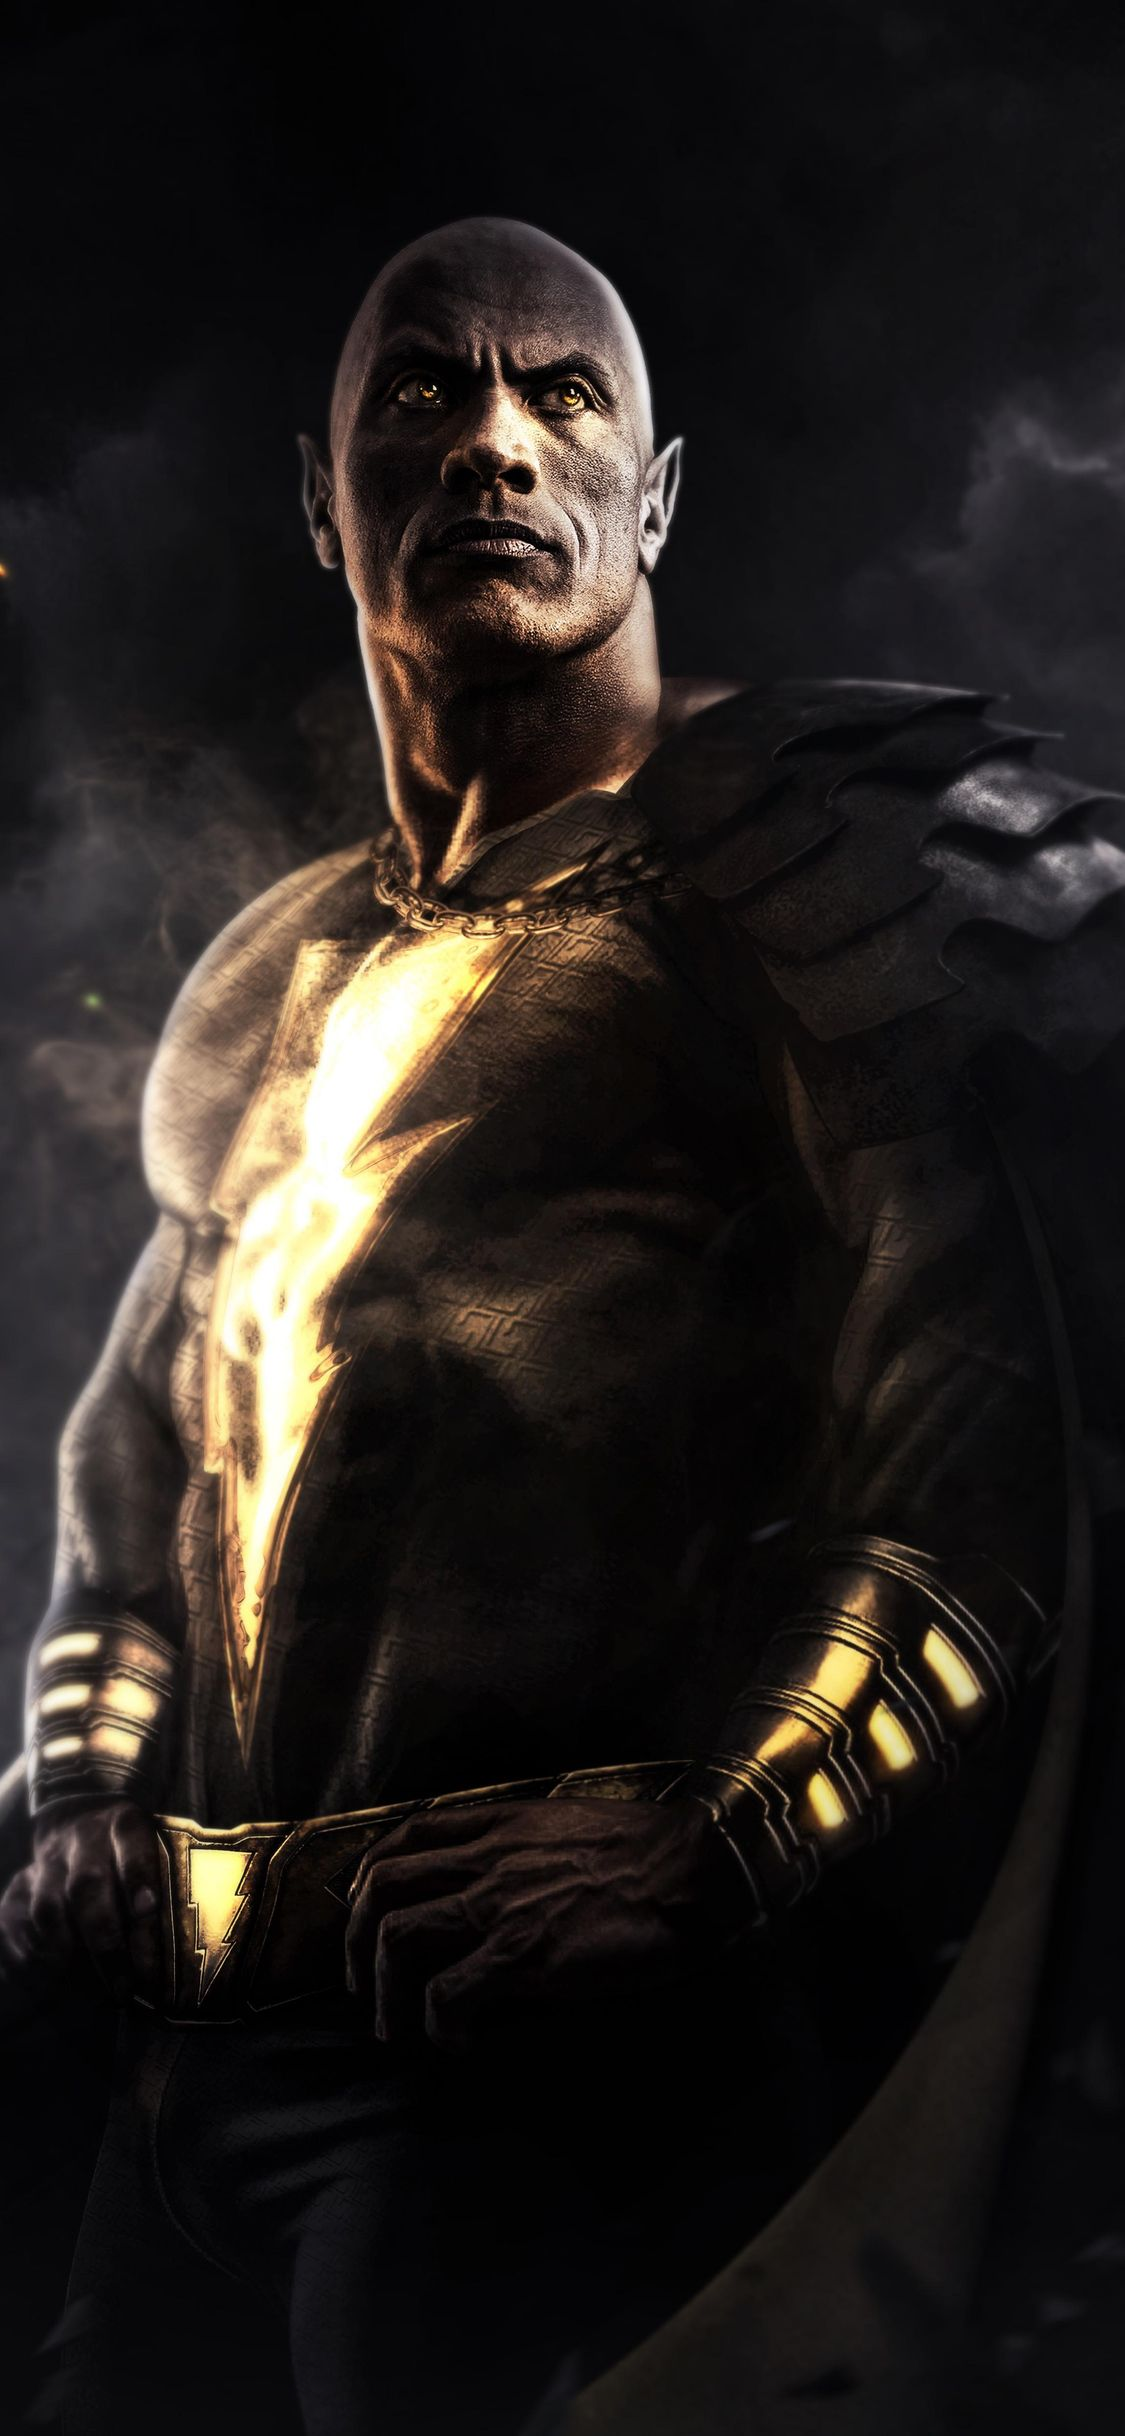 1125x2436 Black Adam Movie Iphone Xs Iphone 10 Iphone X Hd 4k Wallpapers Images Backgrounds Photos And Pictur The Rock Dwayne Johnson Dwayne The Rock Shazam